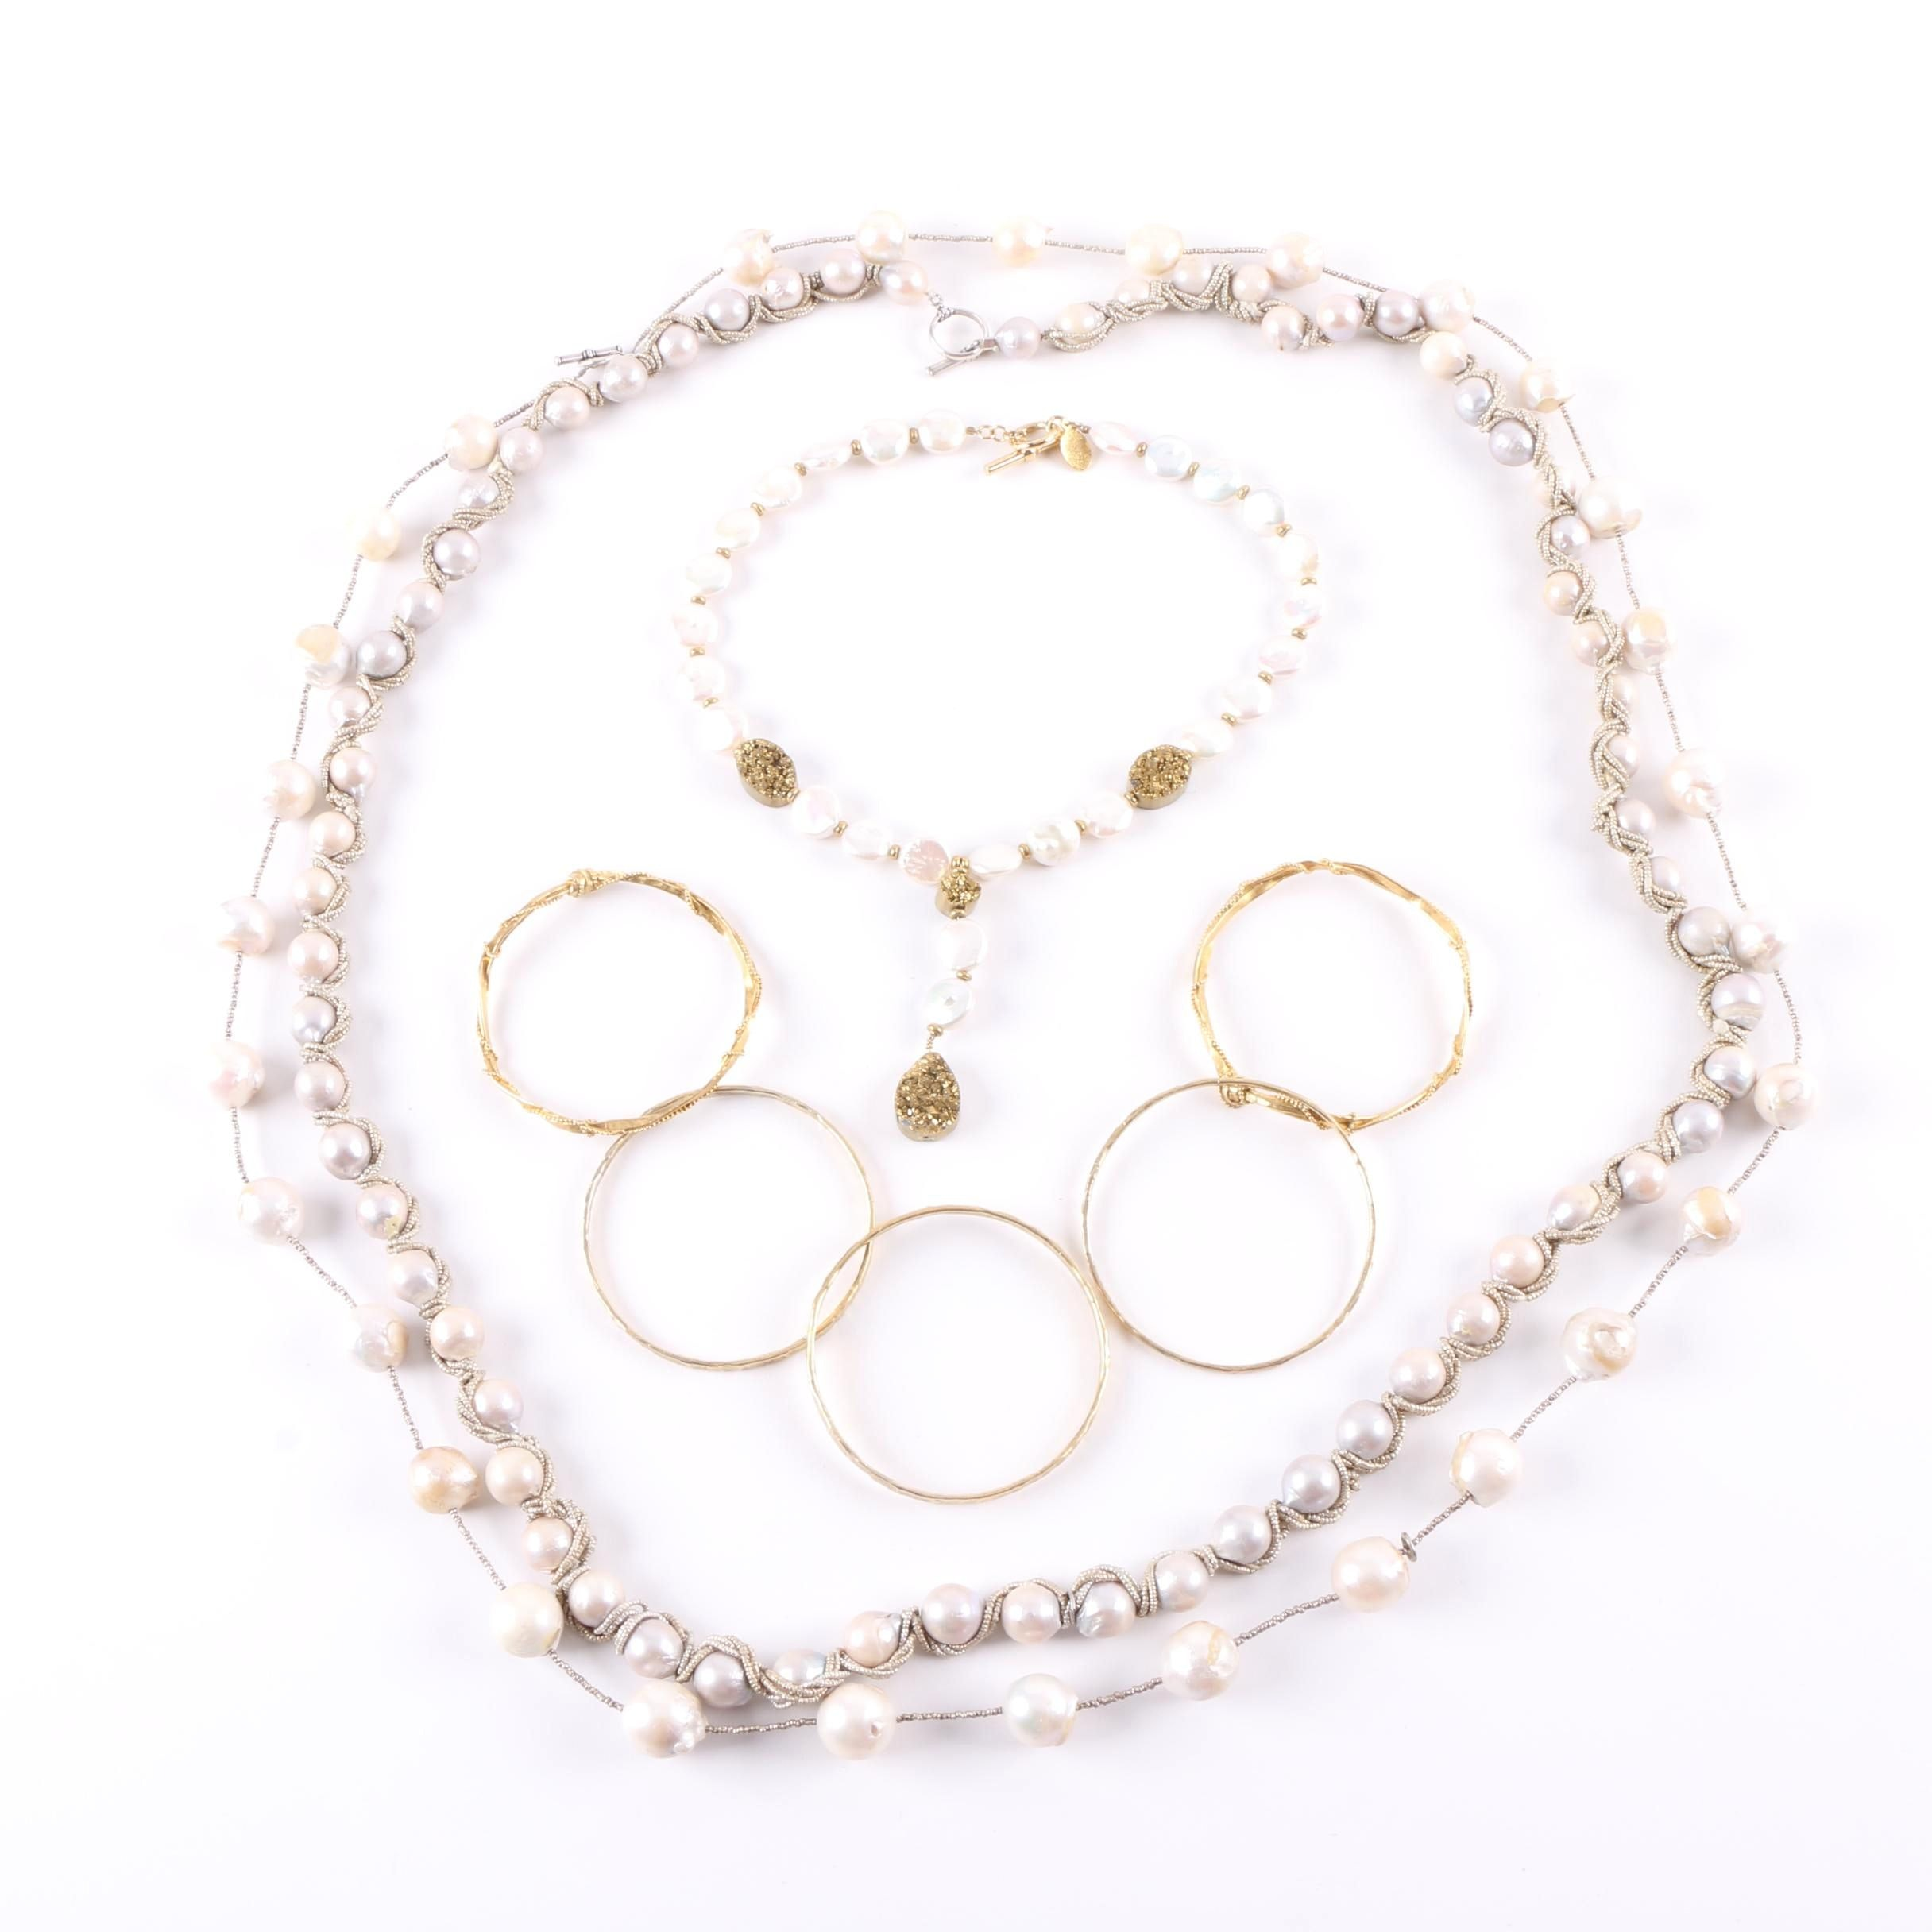 Sterling Silver and Gold-Tone Cultured Pearl and Druzy Jewelry Assortment